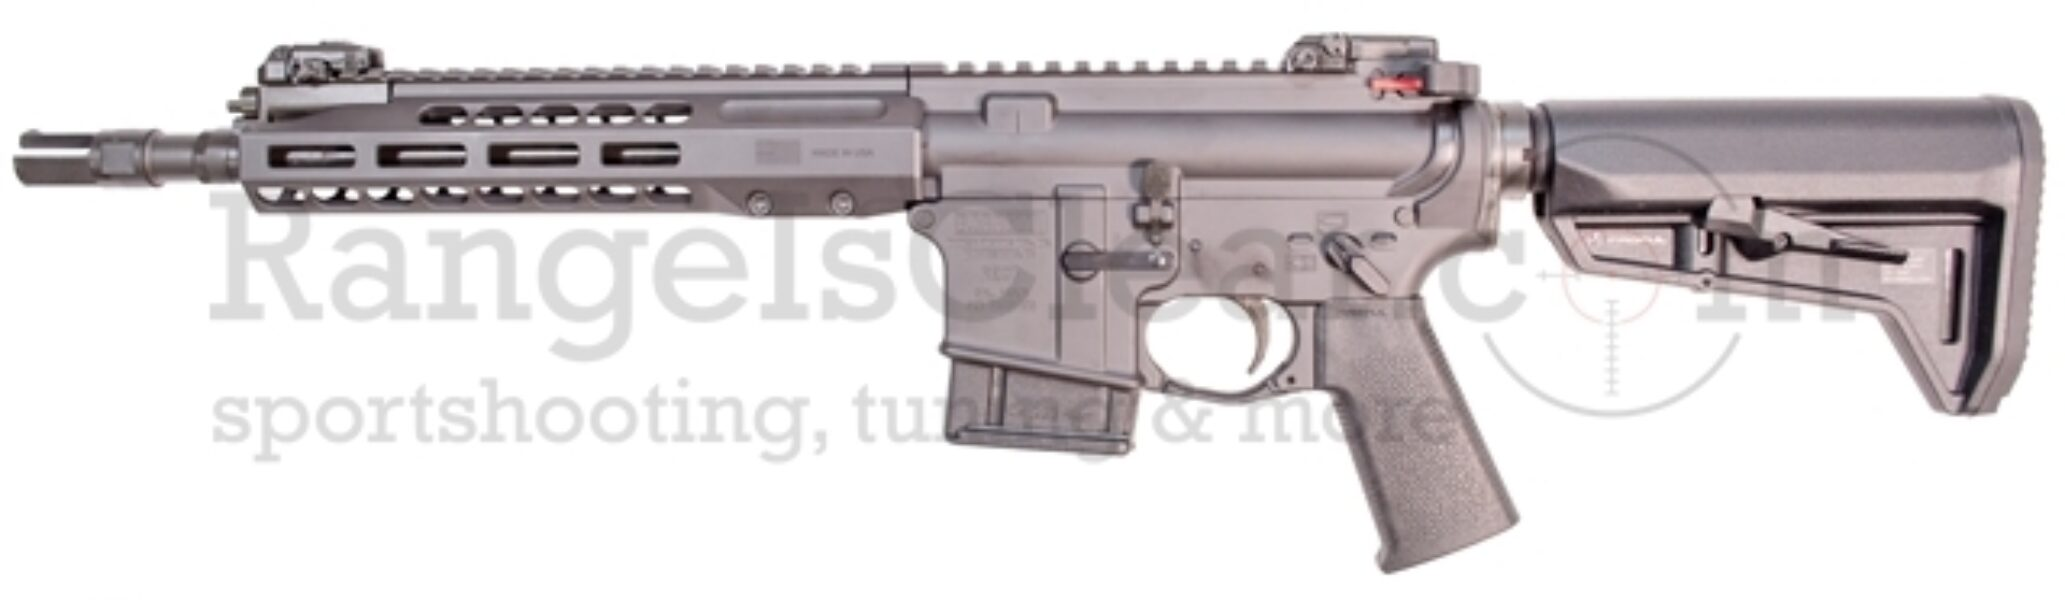 Rec7 Gen2 SBR 115 Piston system left full Copy